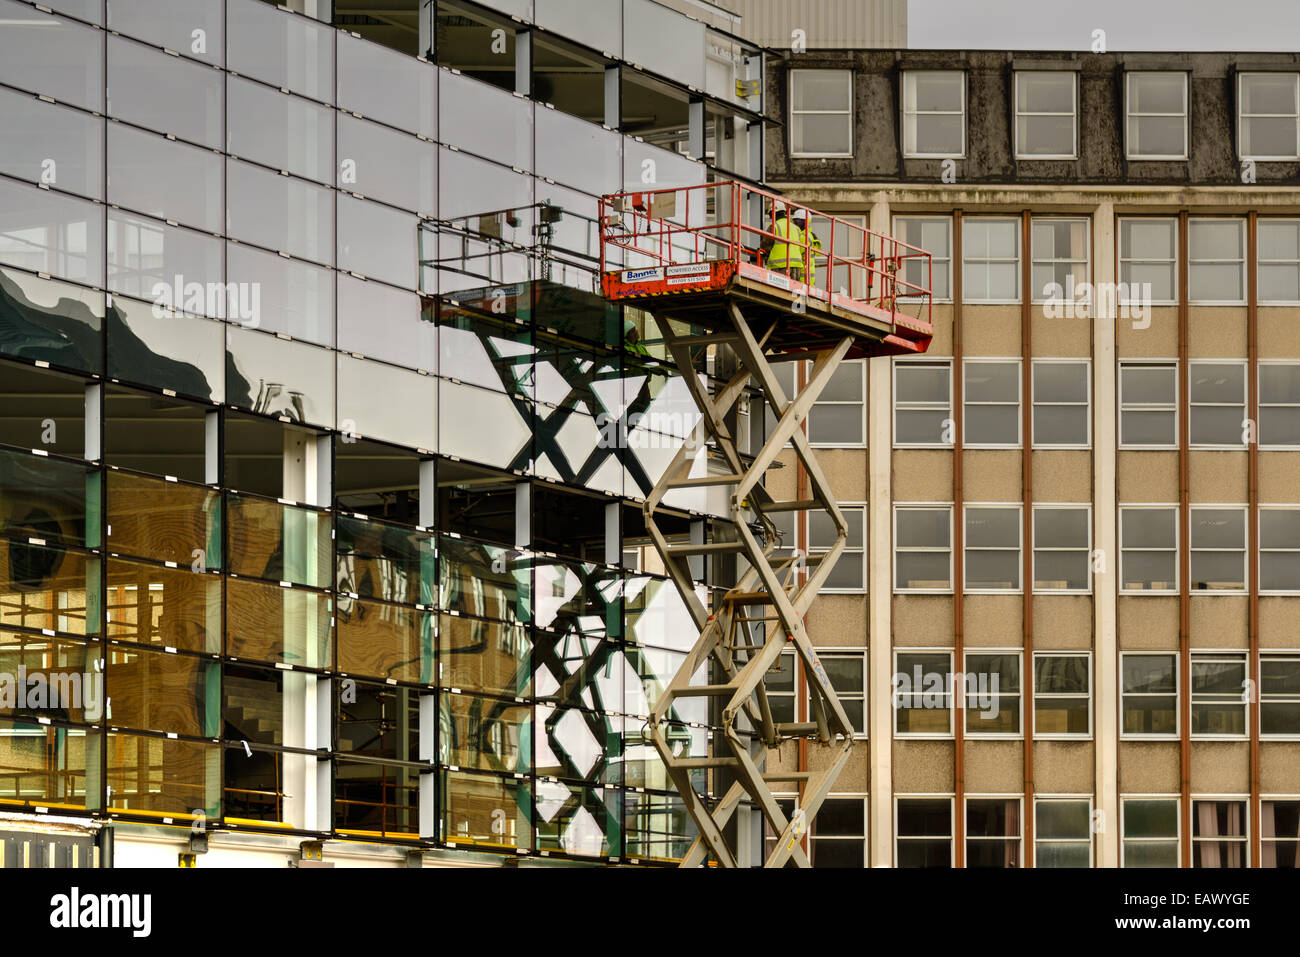 Westfield Shopping Centre and cherry picker lift - Stock Image